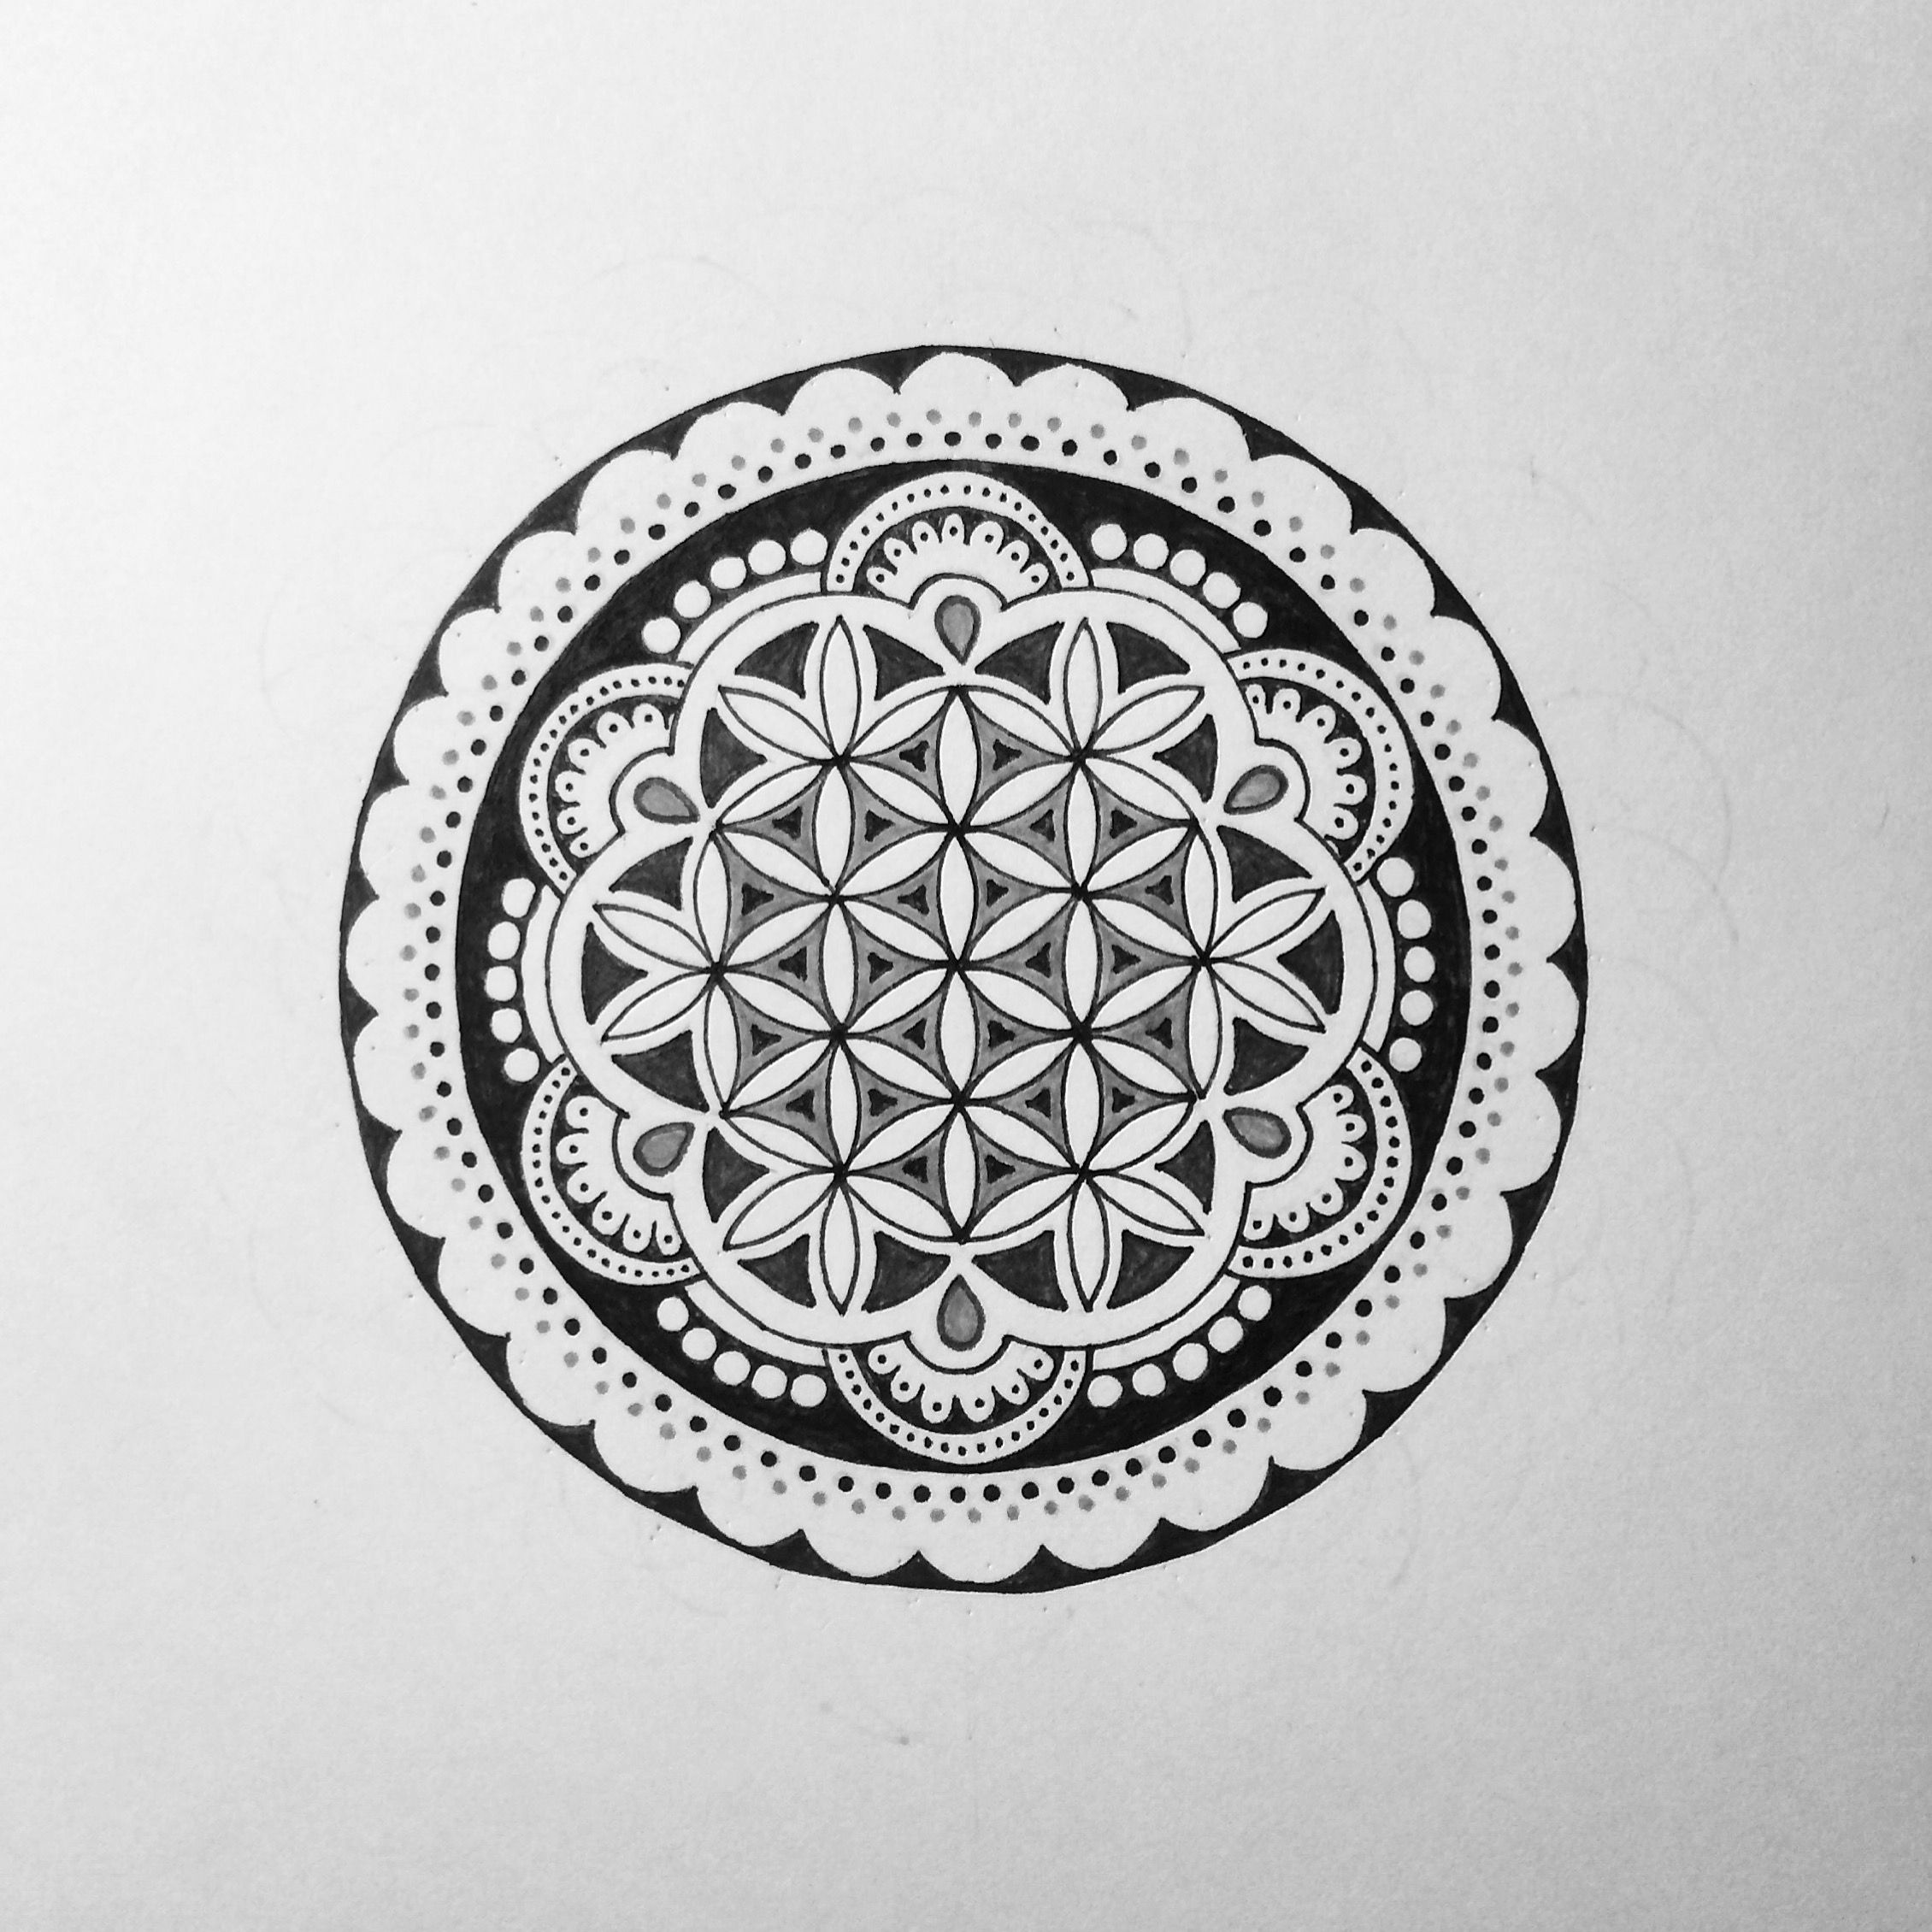 a flower of life mandala doodle i did for a tattoo design mandala tattoo tattoos pinterest. Black Bedroom Furniture Sets. Home Design Ideas